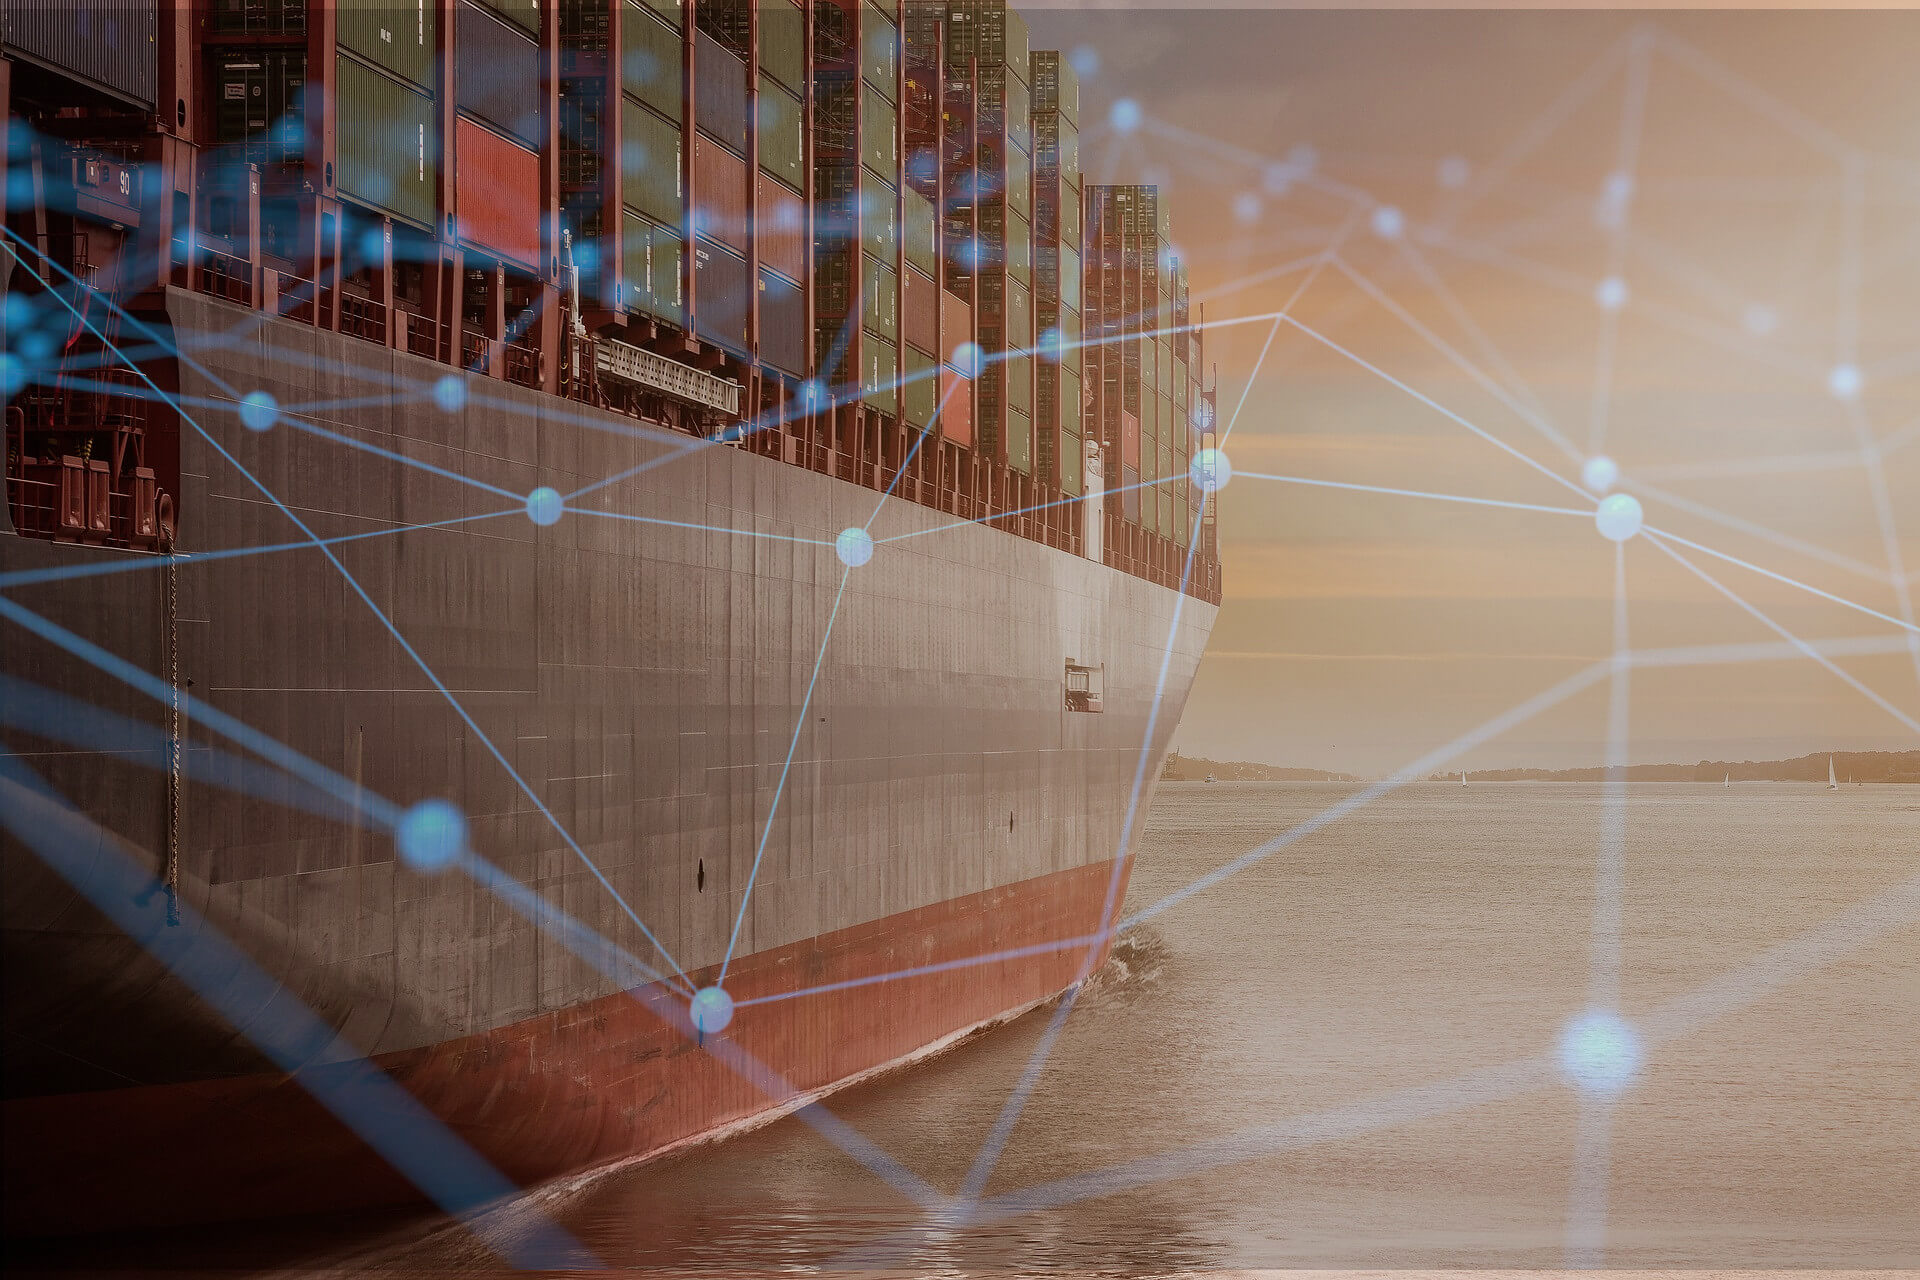 container ship blockchain